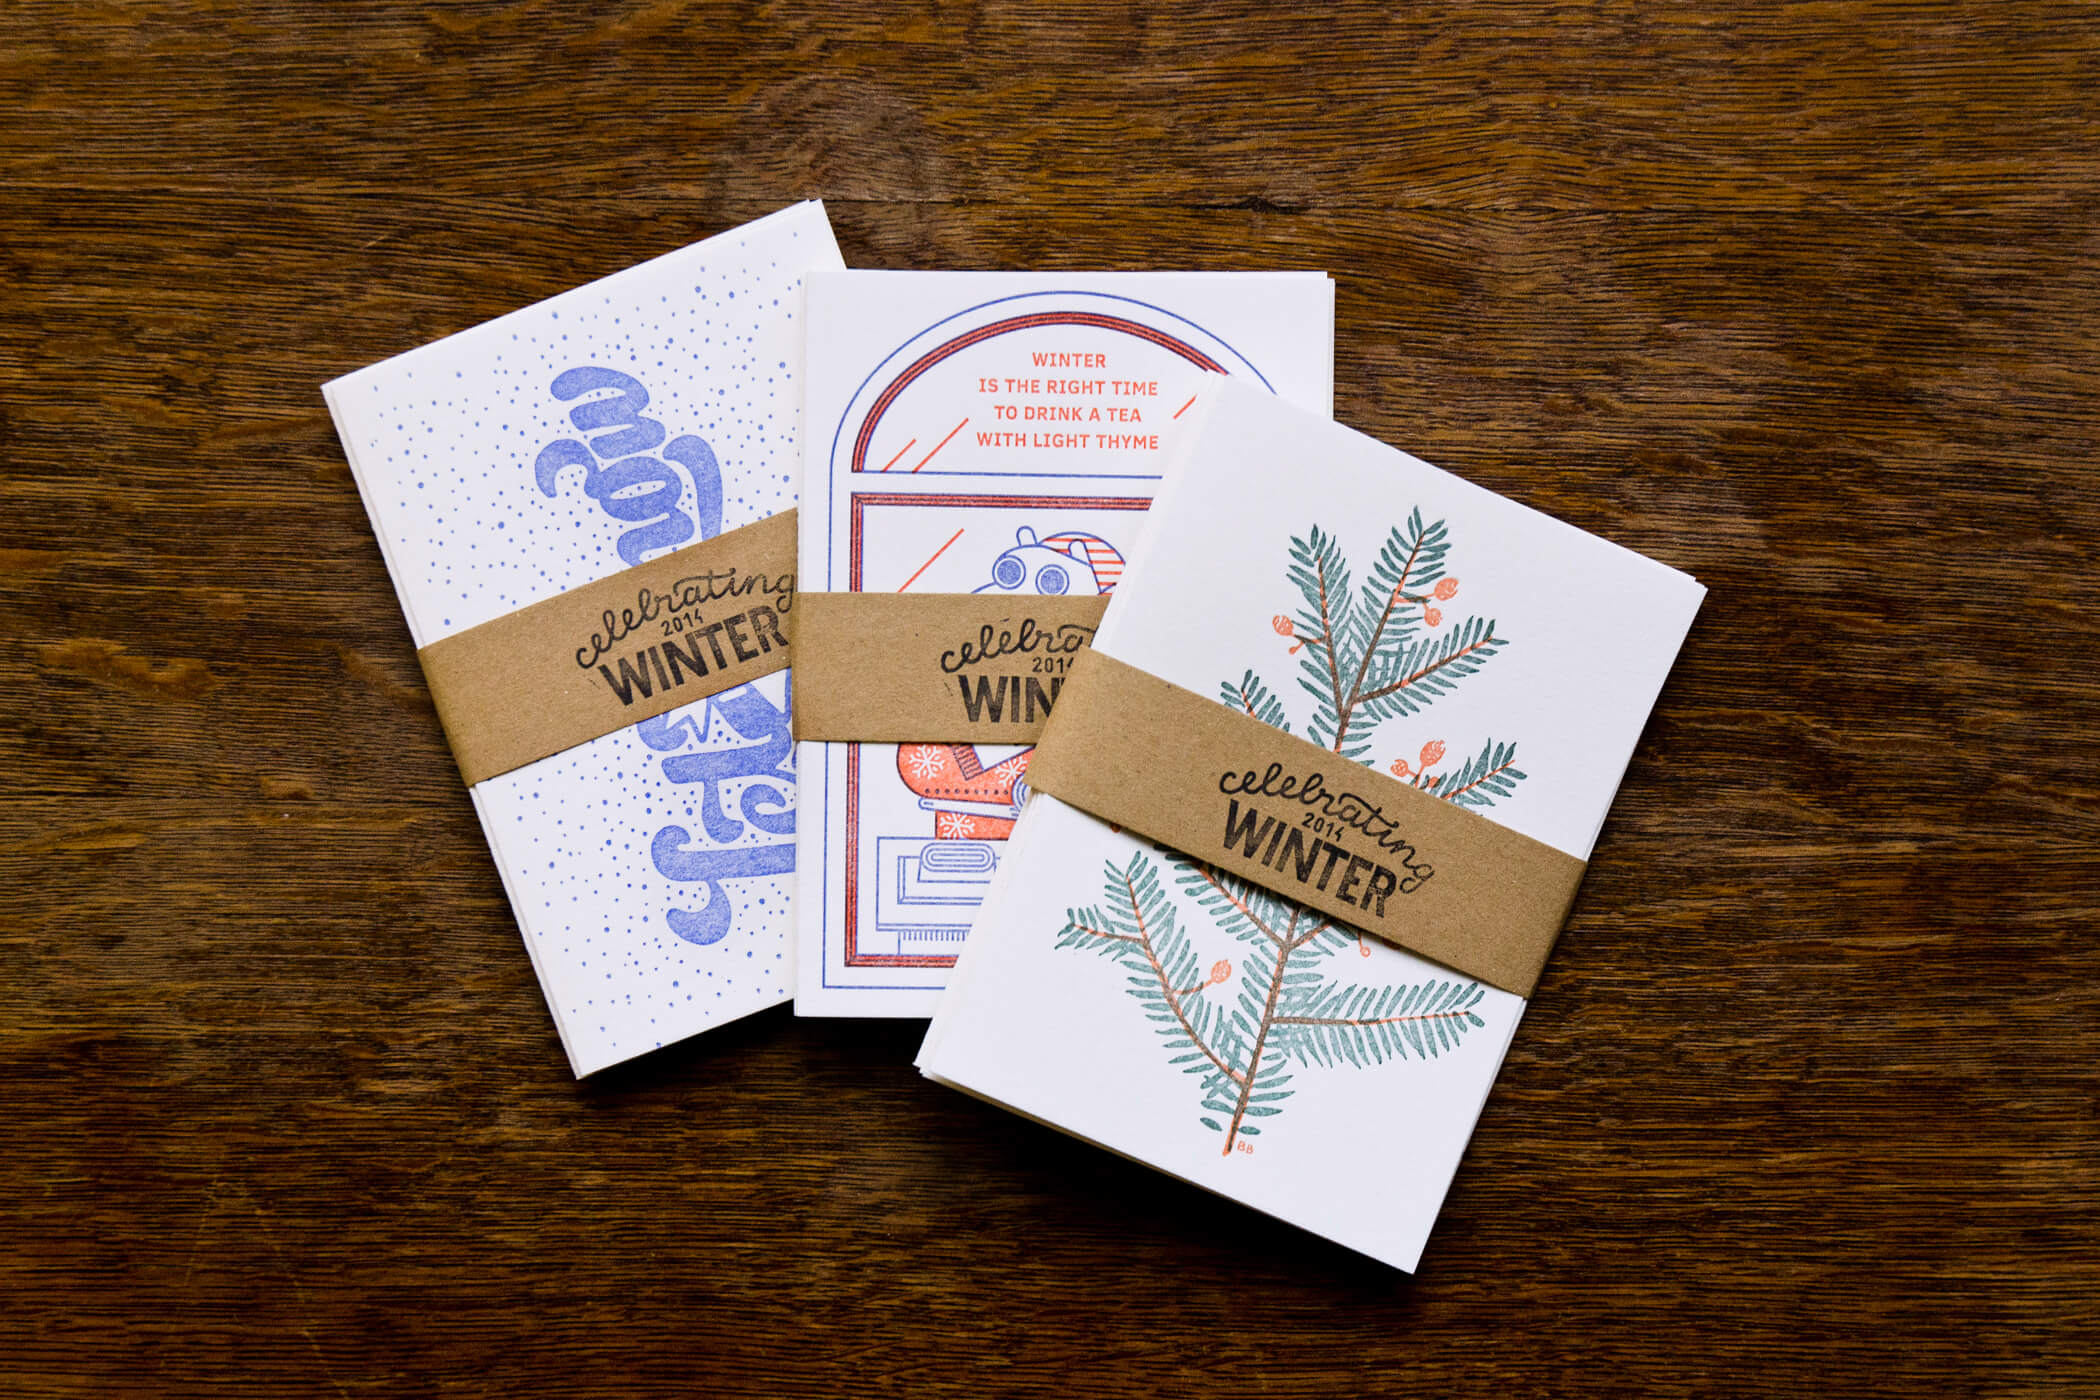 Letterpress winter postcard